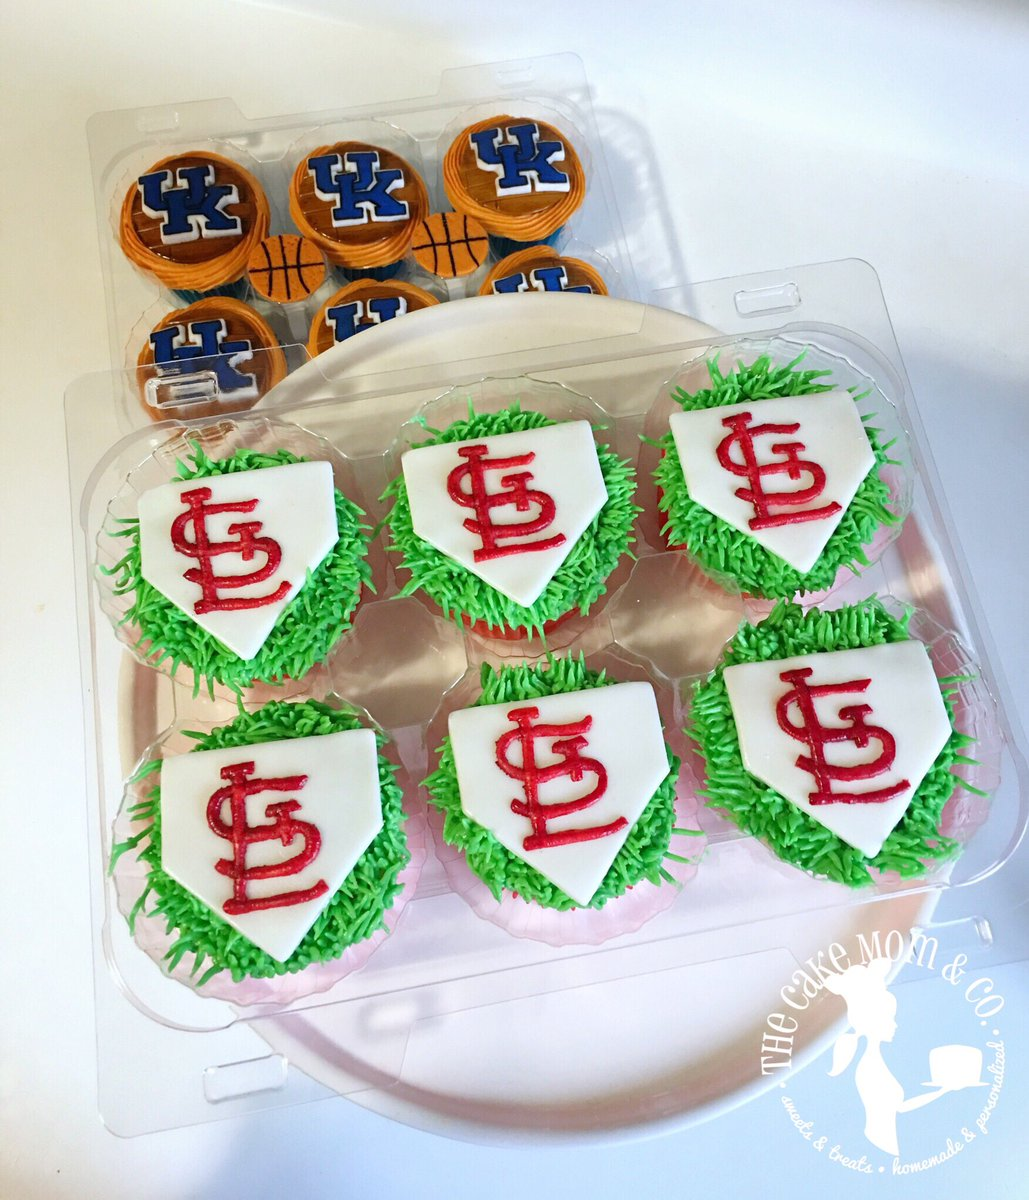 Surprising The Cake Mom Co On Twitter St Louis Cardinals Themed Funny Birthday Cards Online Fluifree Goldxyz